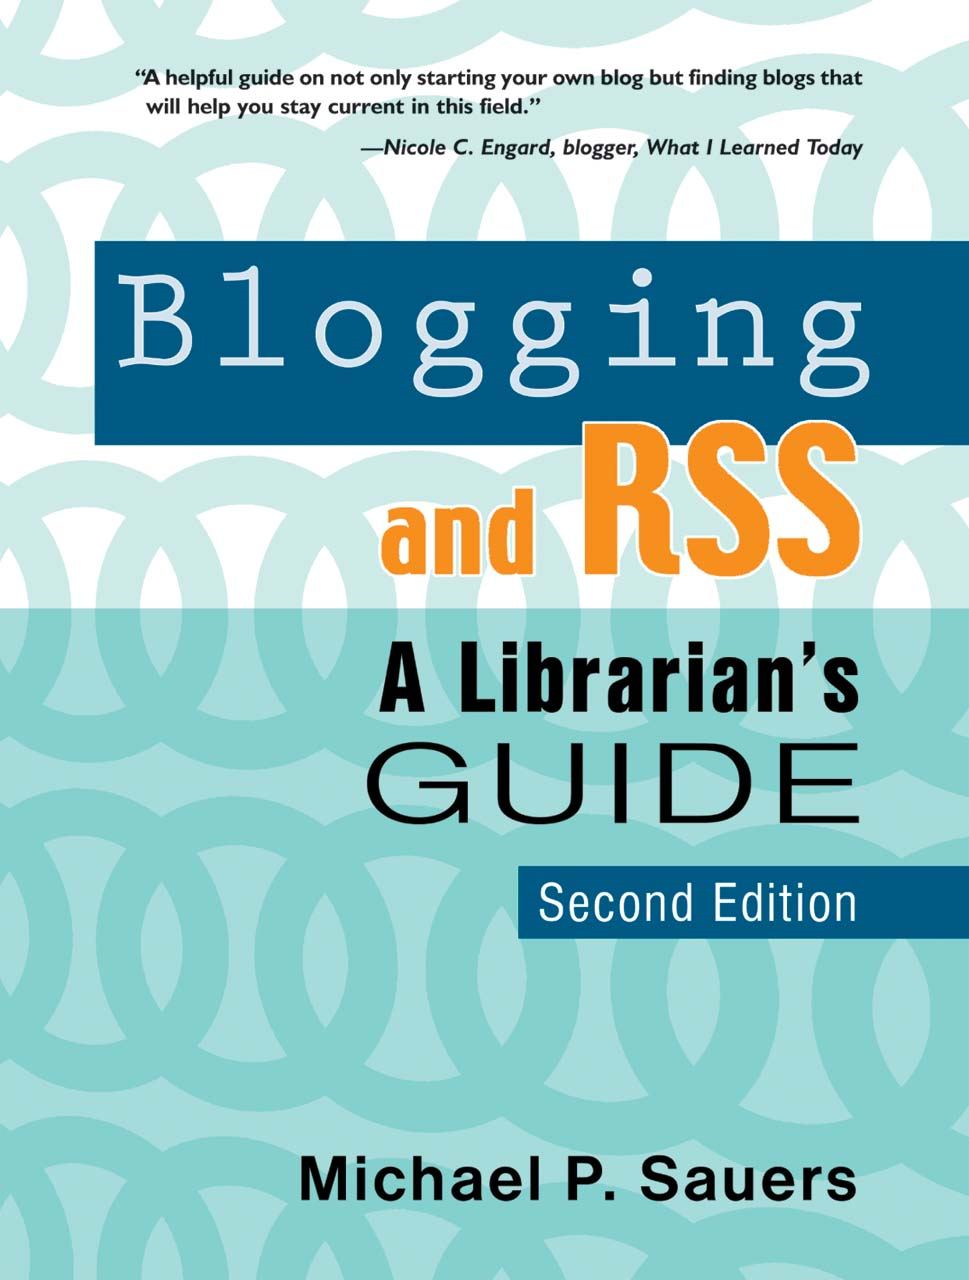 Blogging and RSS Second Edition: A Librarian's Guide By: Michael P. Sauers